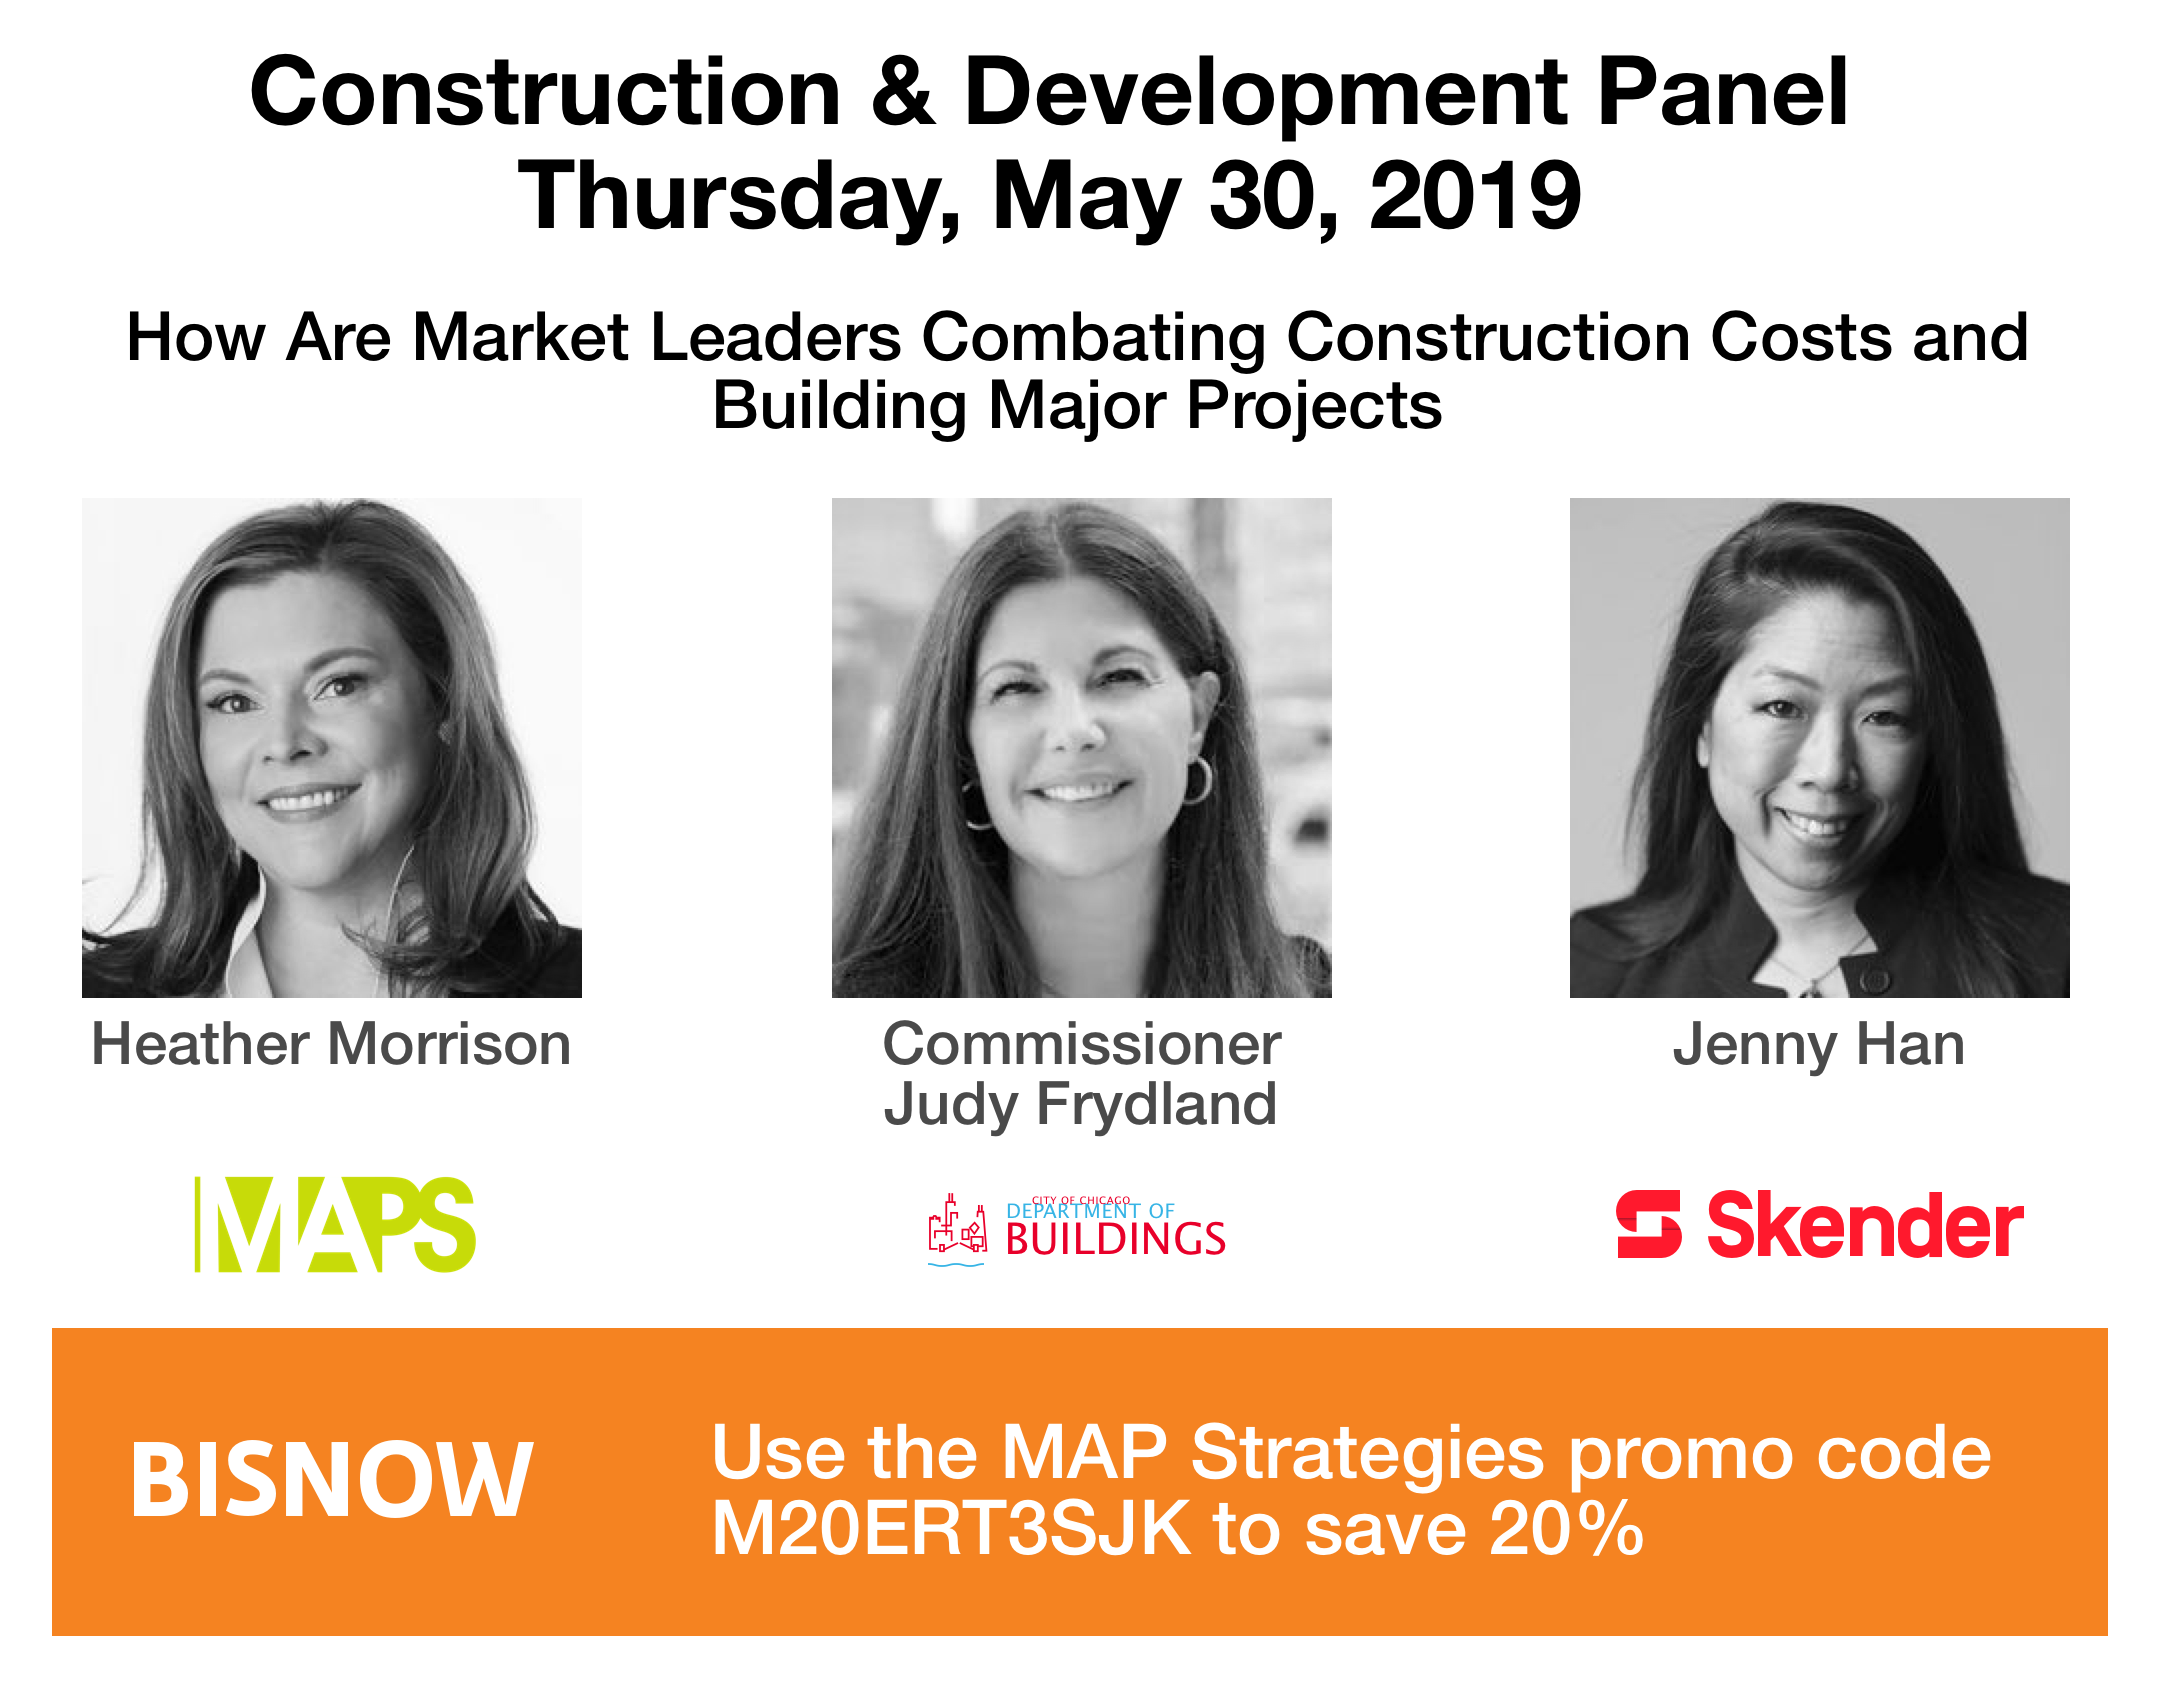 Use promo code M20ERT3SJK to save 20% at the Bisnow panel that MAPS CEO Heather Morrison will be speaking on with Buildings Department Commissioner Judy Frydland and Skender's Director of Design Operations, Jenny Han. The program is on Thursday, May 30th, at 8 AM. These women will speak at 10:20 AM.